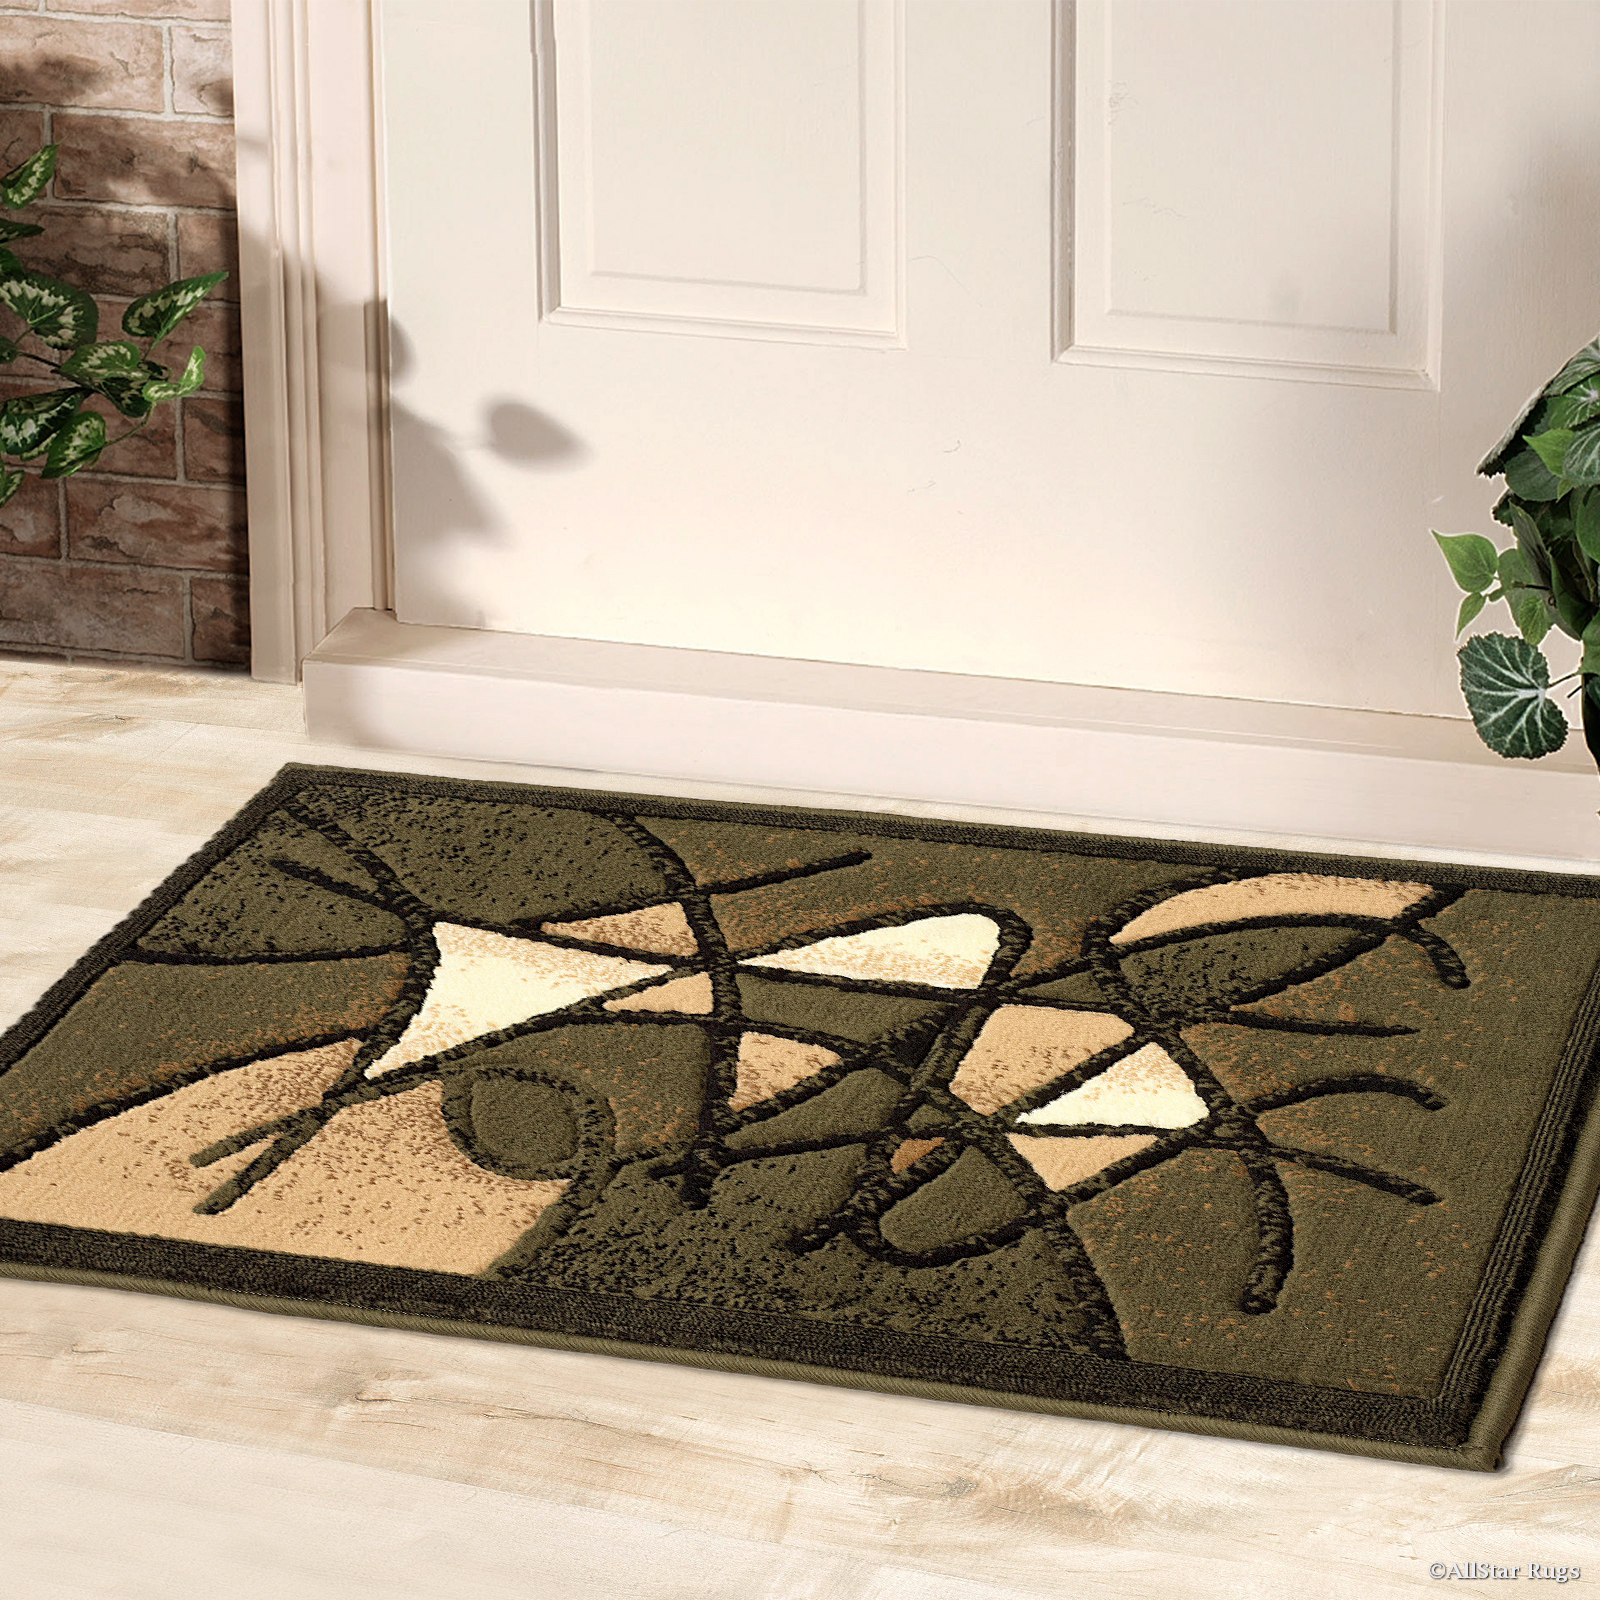 "Allstar Green Doormat Accent Rug Abstract Modern Area Carpet Rug (2' 0"" x 3' 3"") by"